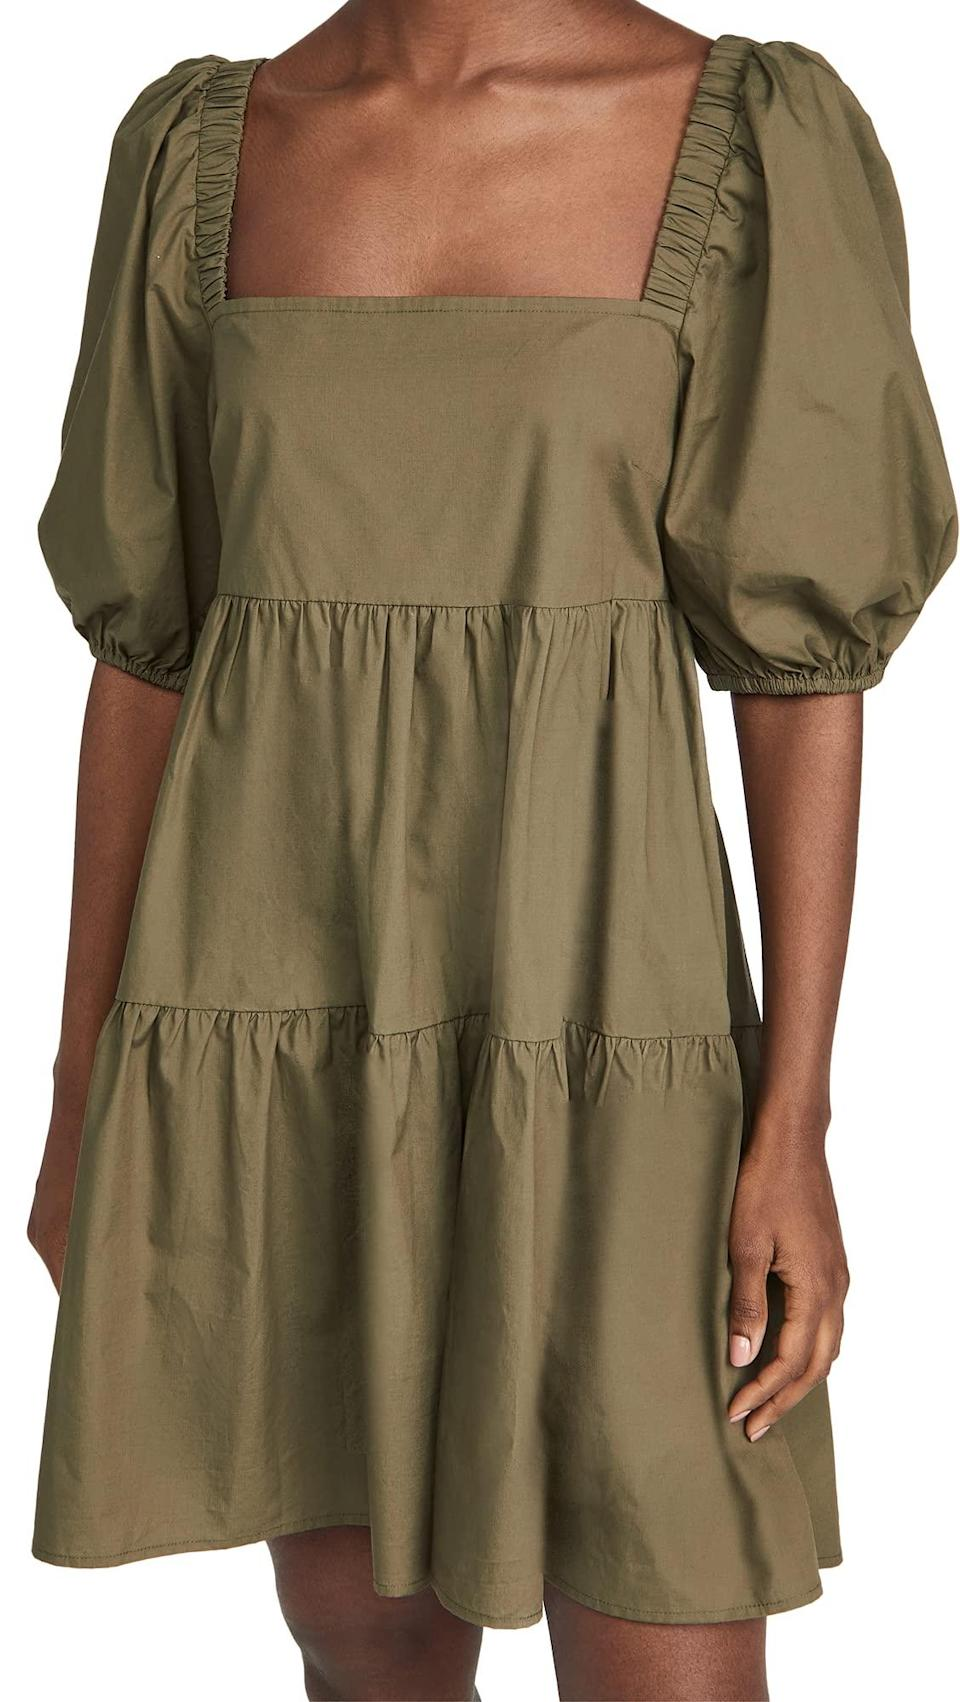 """<em>Shop Shopbop-curated dresses at <strong><a href=""""https://amzn.to/3gTBPAU"""" rel=""""nofollow noopener"""" target=""""_blank"""" data-ylk=""""slk:Amazon"""" class=""""link rapid-noclick-resp"""">Amazon</a></strong></em><br><br><strong>MINKPINK</strong> Issy Babydoll Smock Dress, $, available at <a href=""""https://amzn.to/3j0qHok"""" rel=""""nofollow noopener"""" target=""""_blank"""" data-ylk=""""slk:Amazon"""" class=""""link rapid-noclick-resp"""">Amazon</a>"""